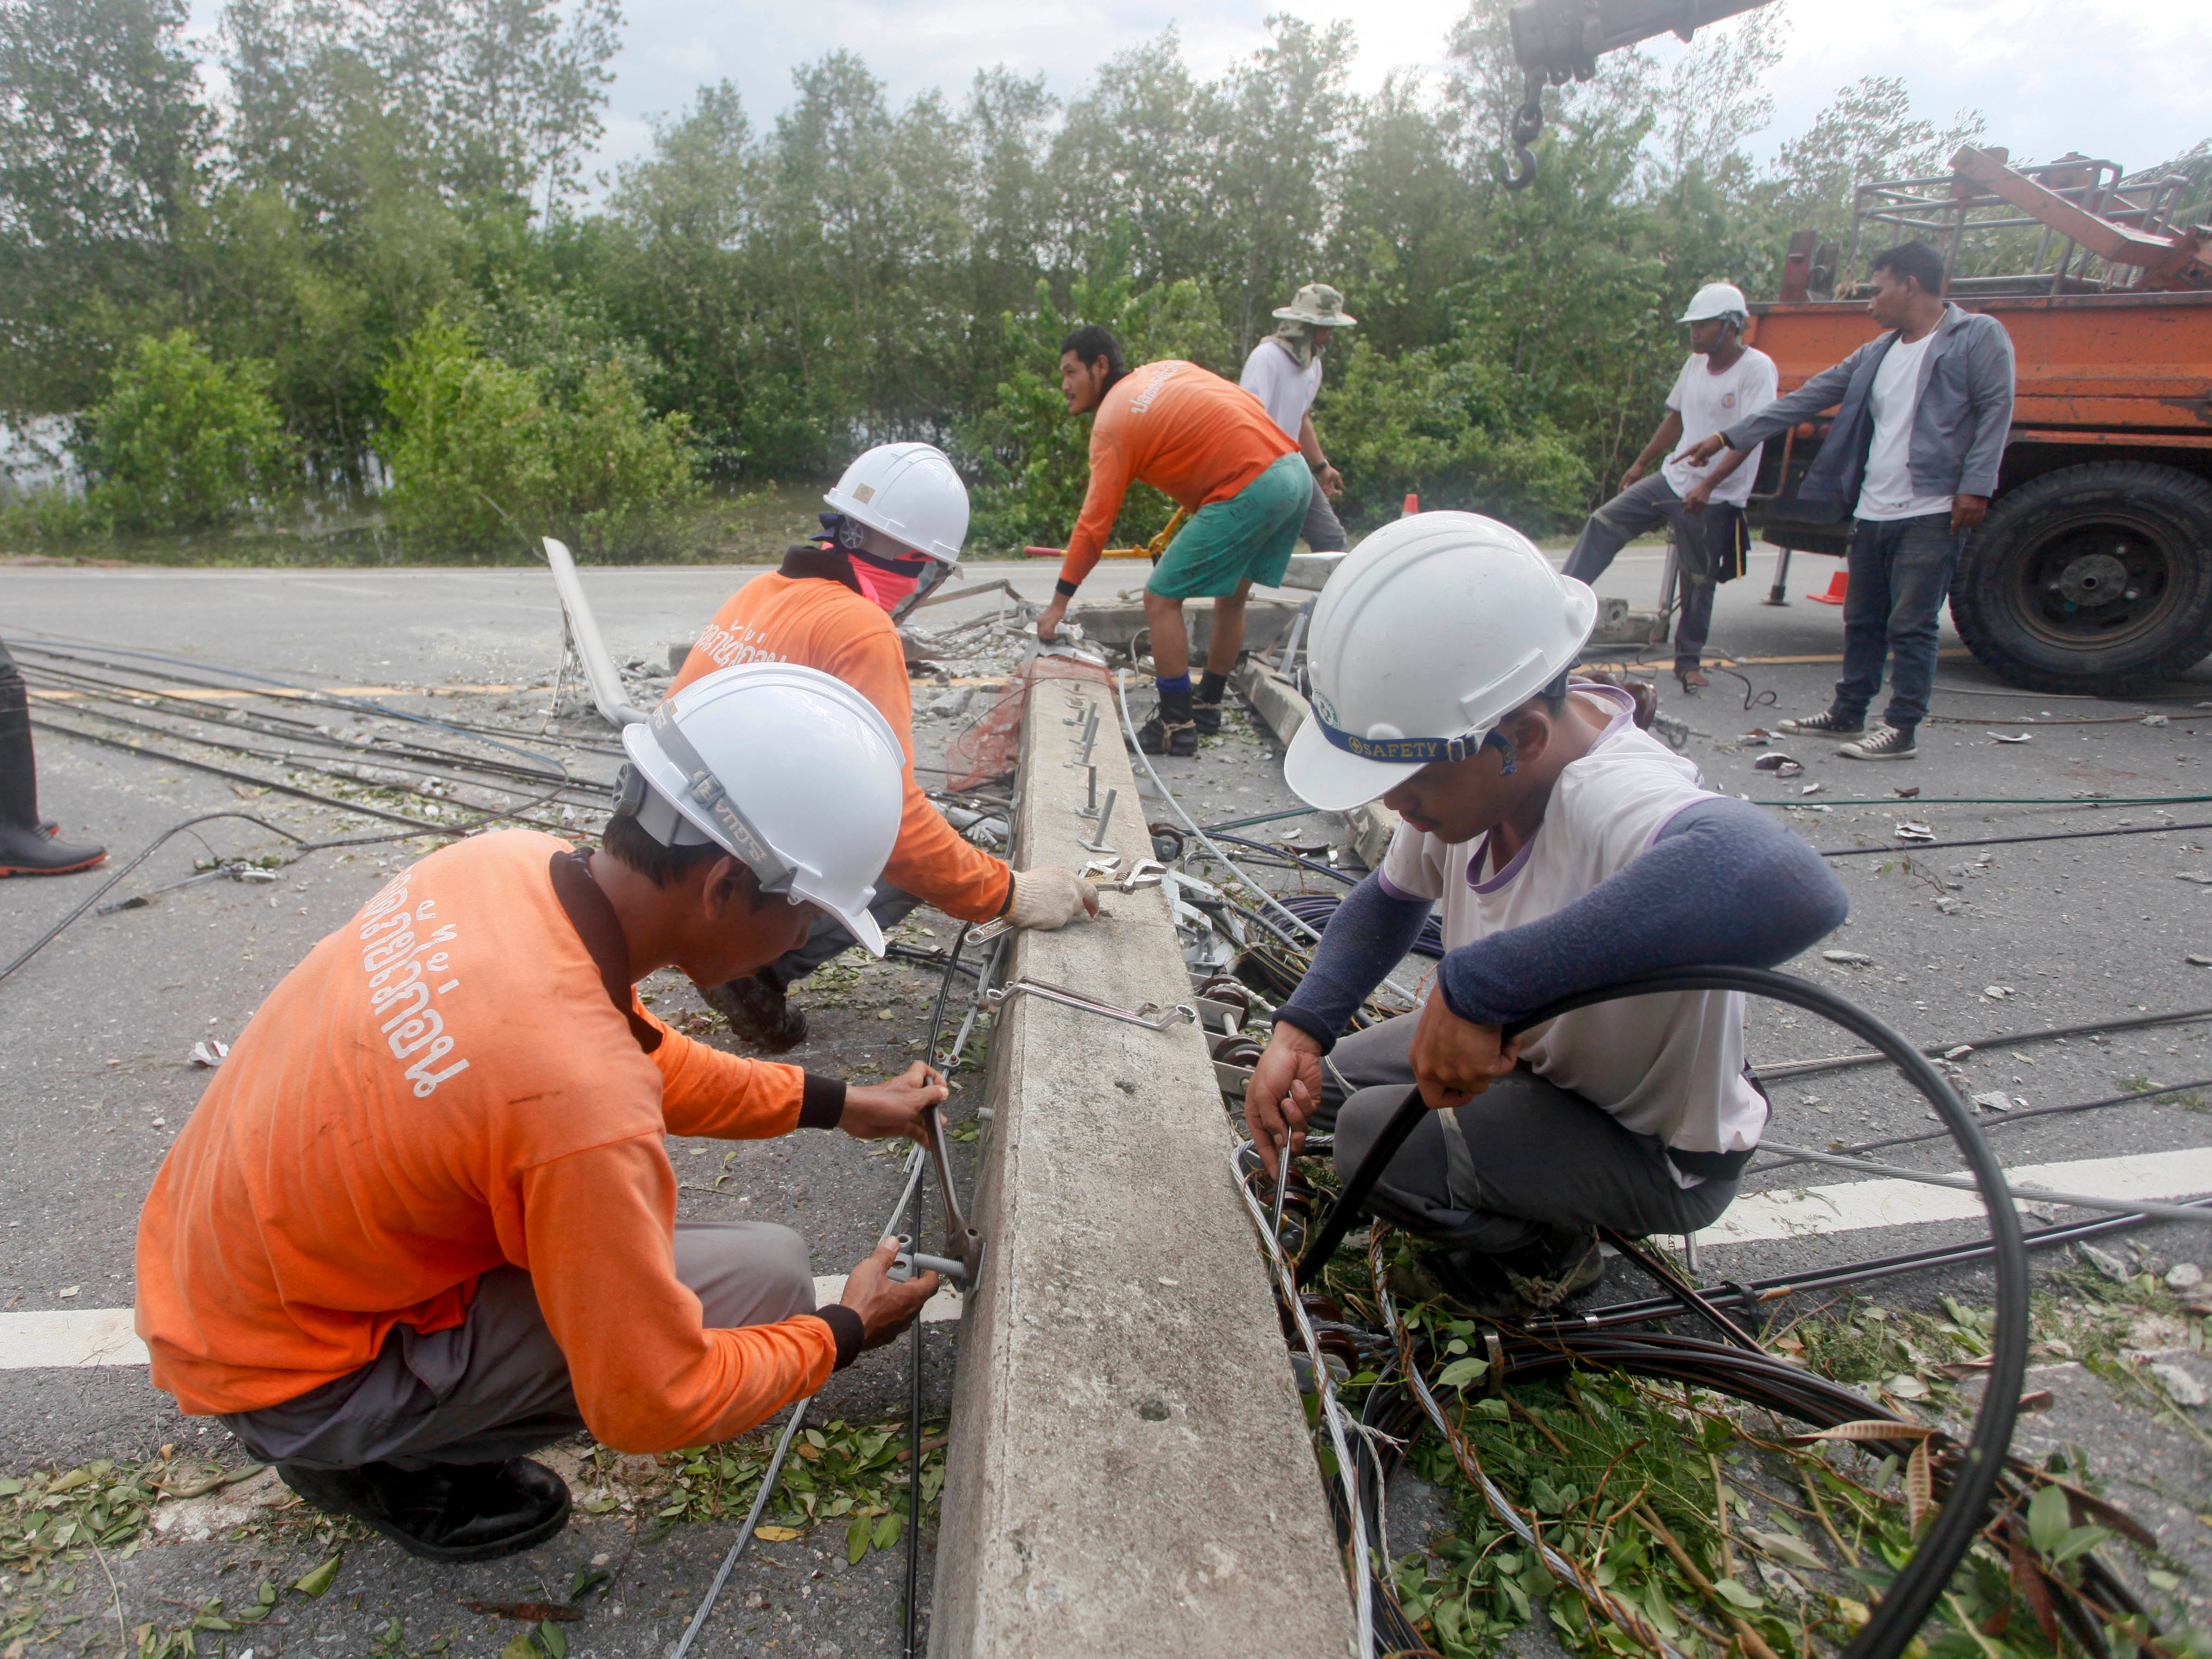 Workers repair toppled power lines in the aftermath of Tropical Storm Pabuk Saturday, Jan. 5, 2019, in Pak Phanang, in the southern province of Nakhon Si Thammarat, southern Thailand. The storm damaged houses, knocked down power lines and triggered flash floods in several east coast provinces.